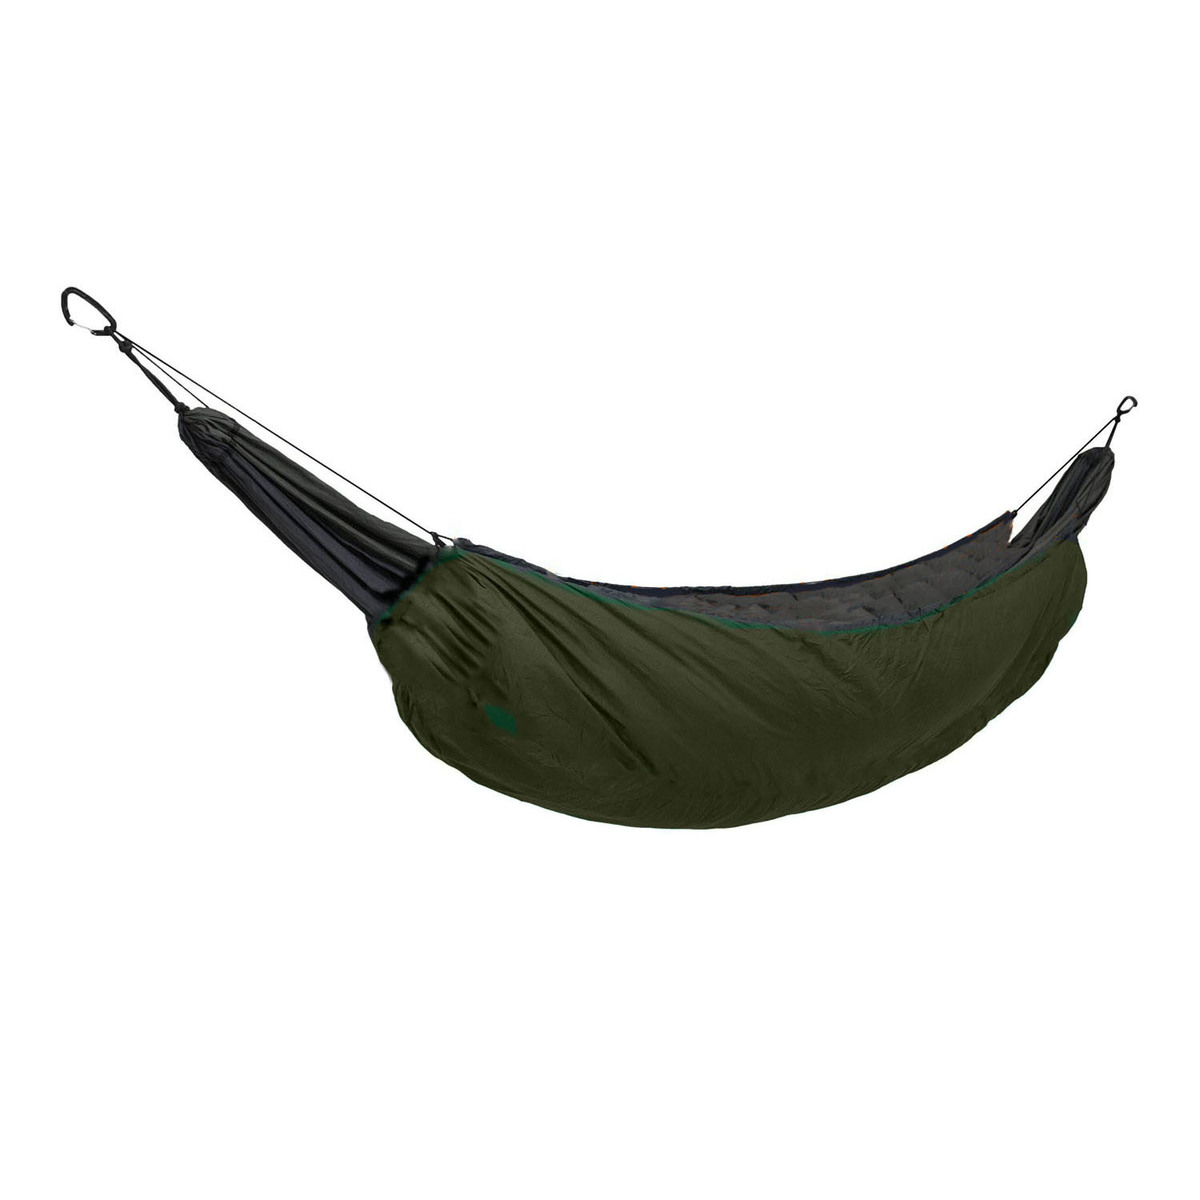 Lightweight Full Length Hammock Underquilt Under Blanket Ultralight Camping Insulation Sleeping Bag 40 F To 68 F (5 C To 20 C)